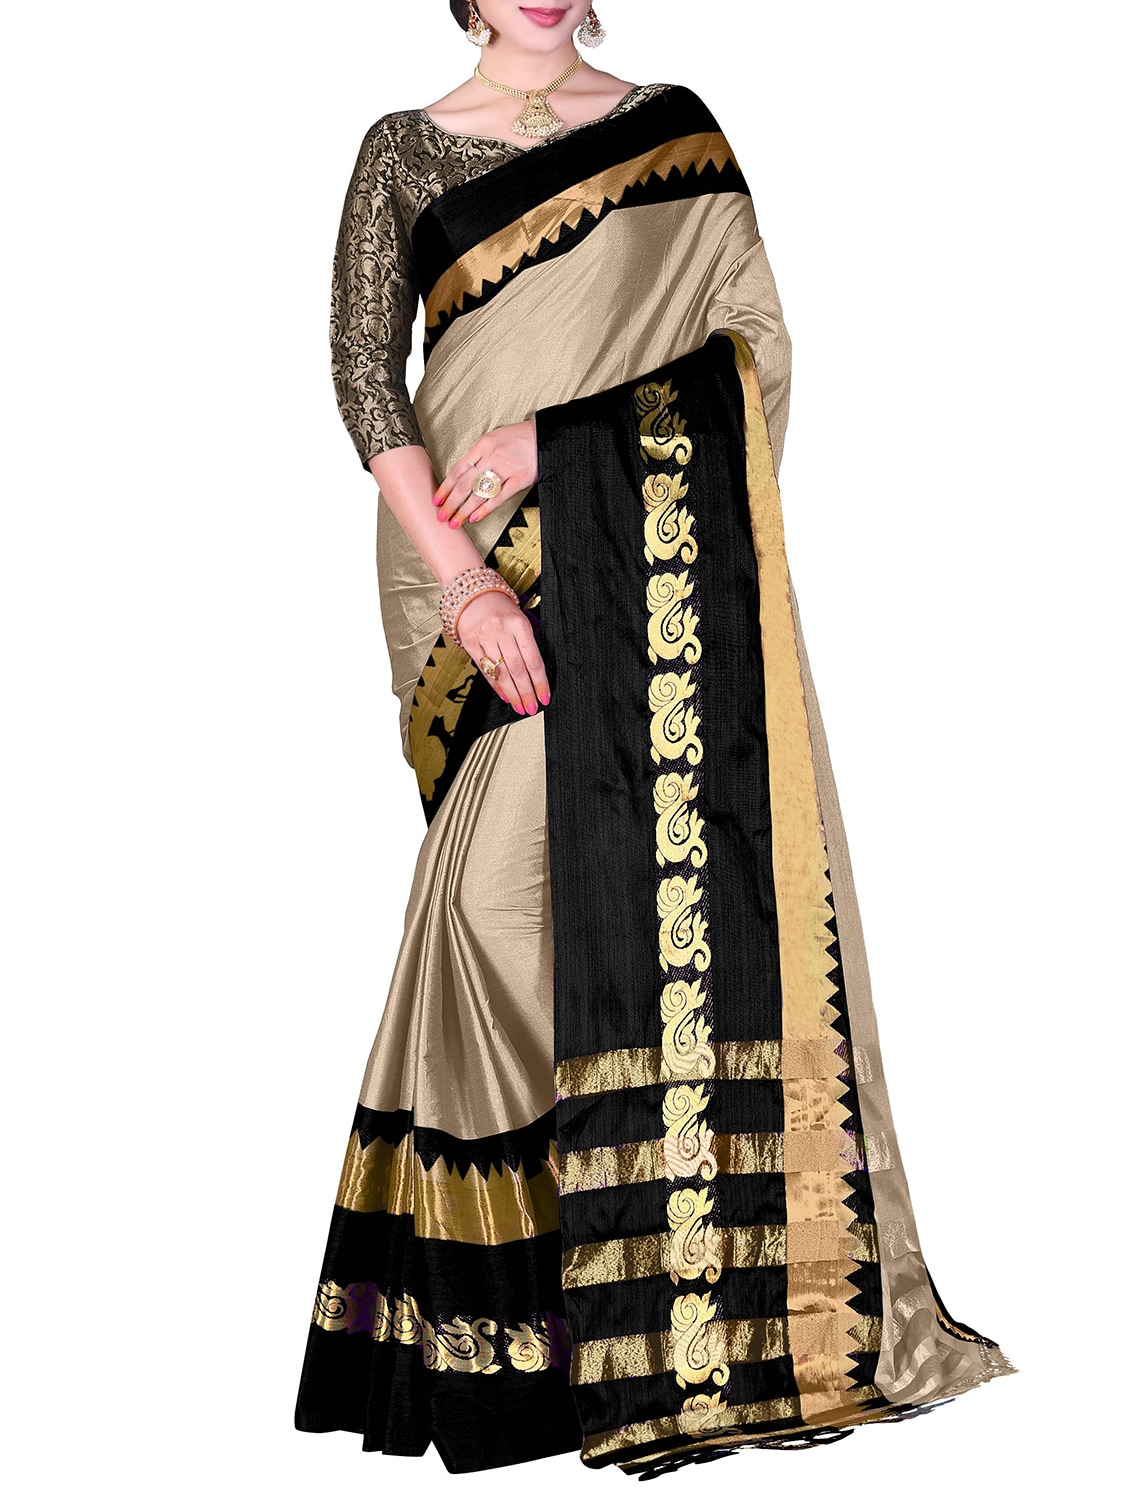 99947acdebb7a7 ... contrast zari border saree with tassels with blouse - 15354571 - Zoom  Image - 1